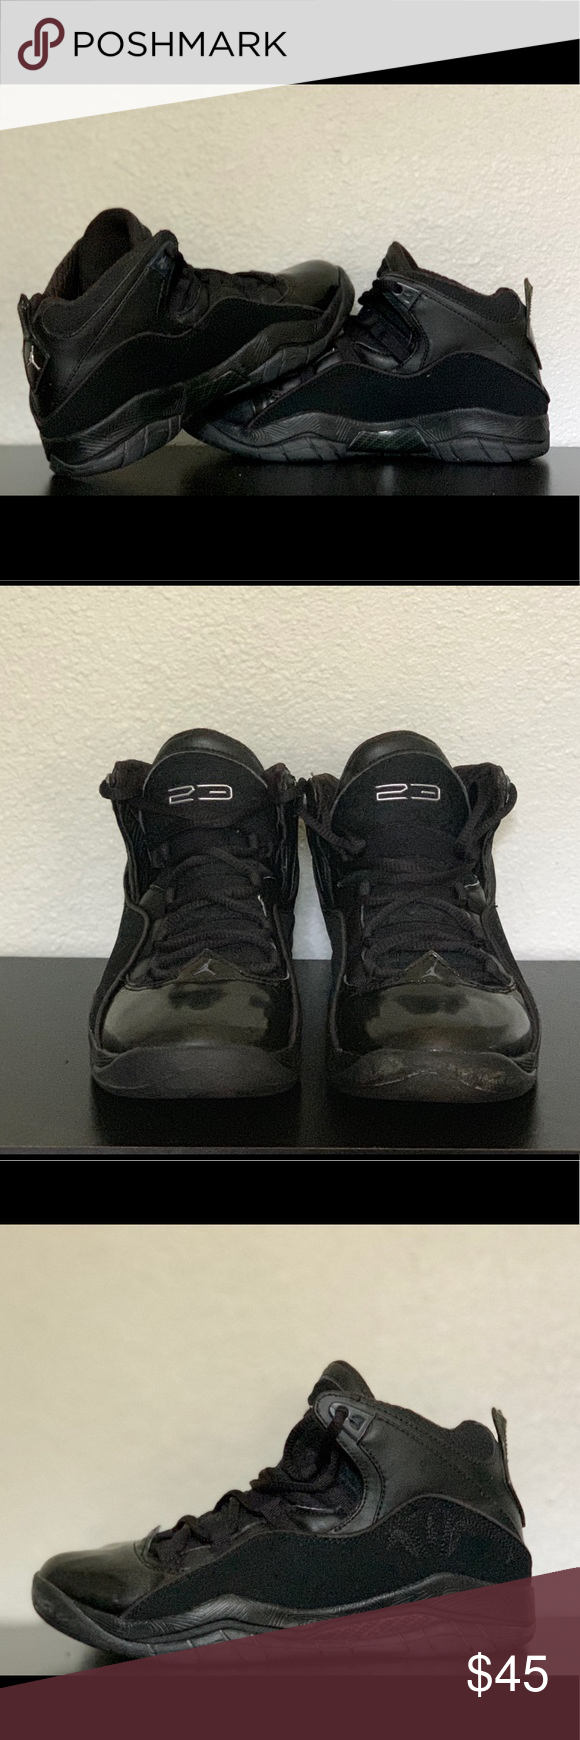 f3cfe205bd1 Nike Air Jordan 23 Black Shoes are 4.5Y; size 6 in women size. Worn once or  twice. Like new. Nike Shoes Athletic Shoes